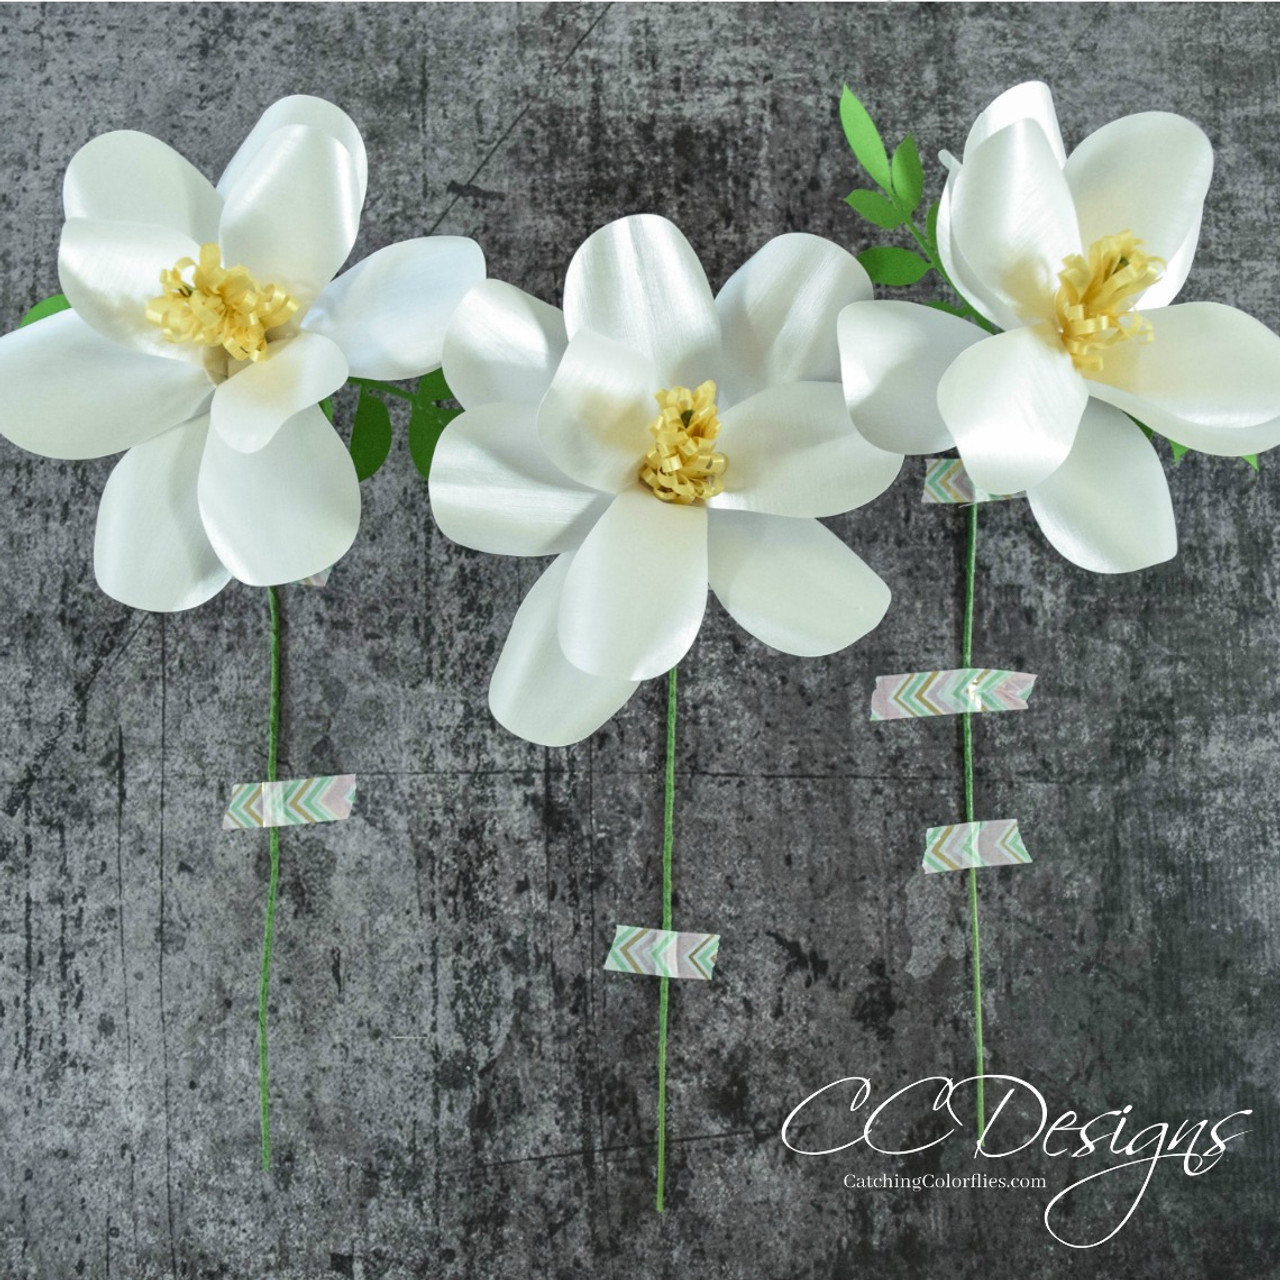 Southern Magnolia Paper Flower Template Catching Colorflies